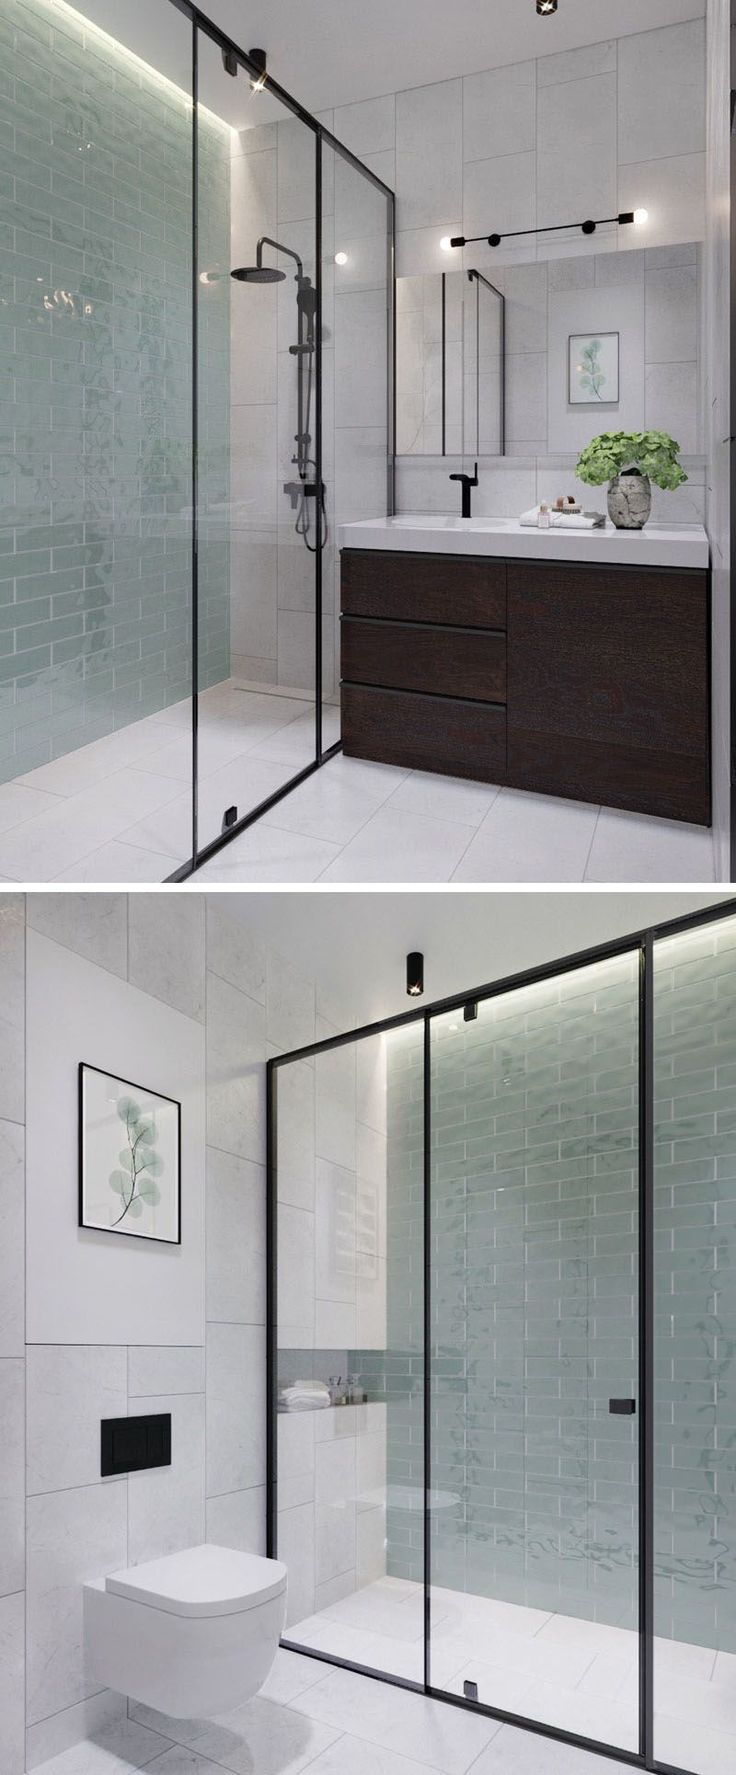 Bathroom shower lights - Black Framed Glass Walls Separate The Bedroom In This Kiev Apartment